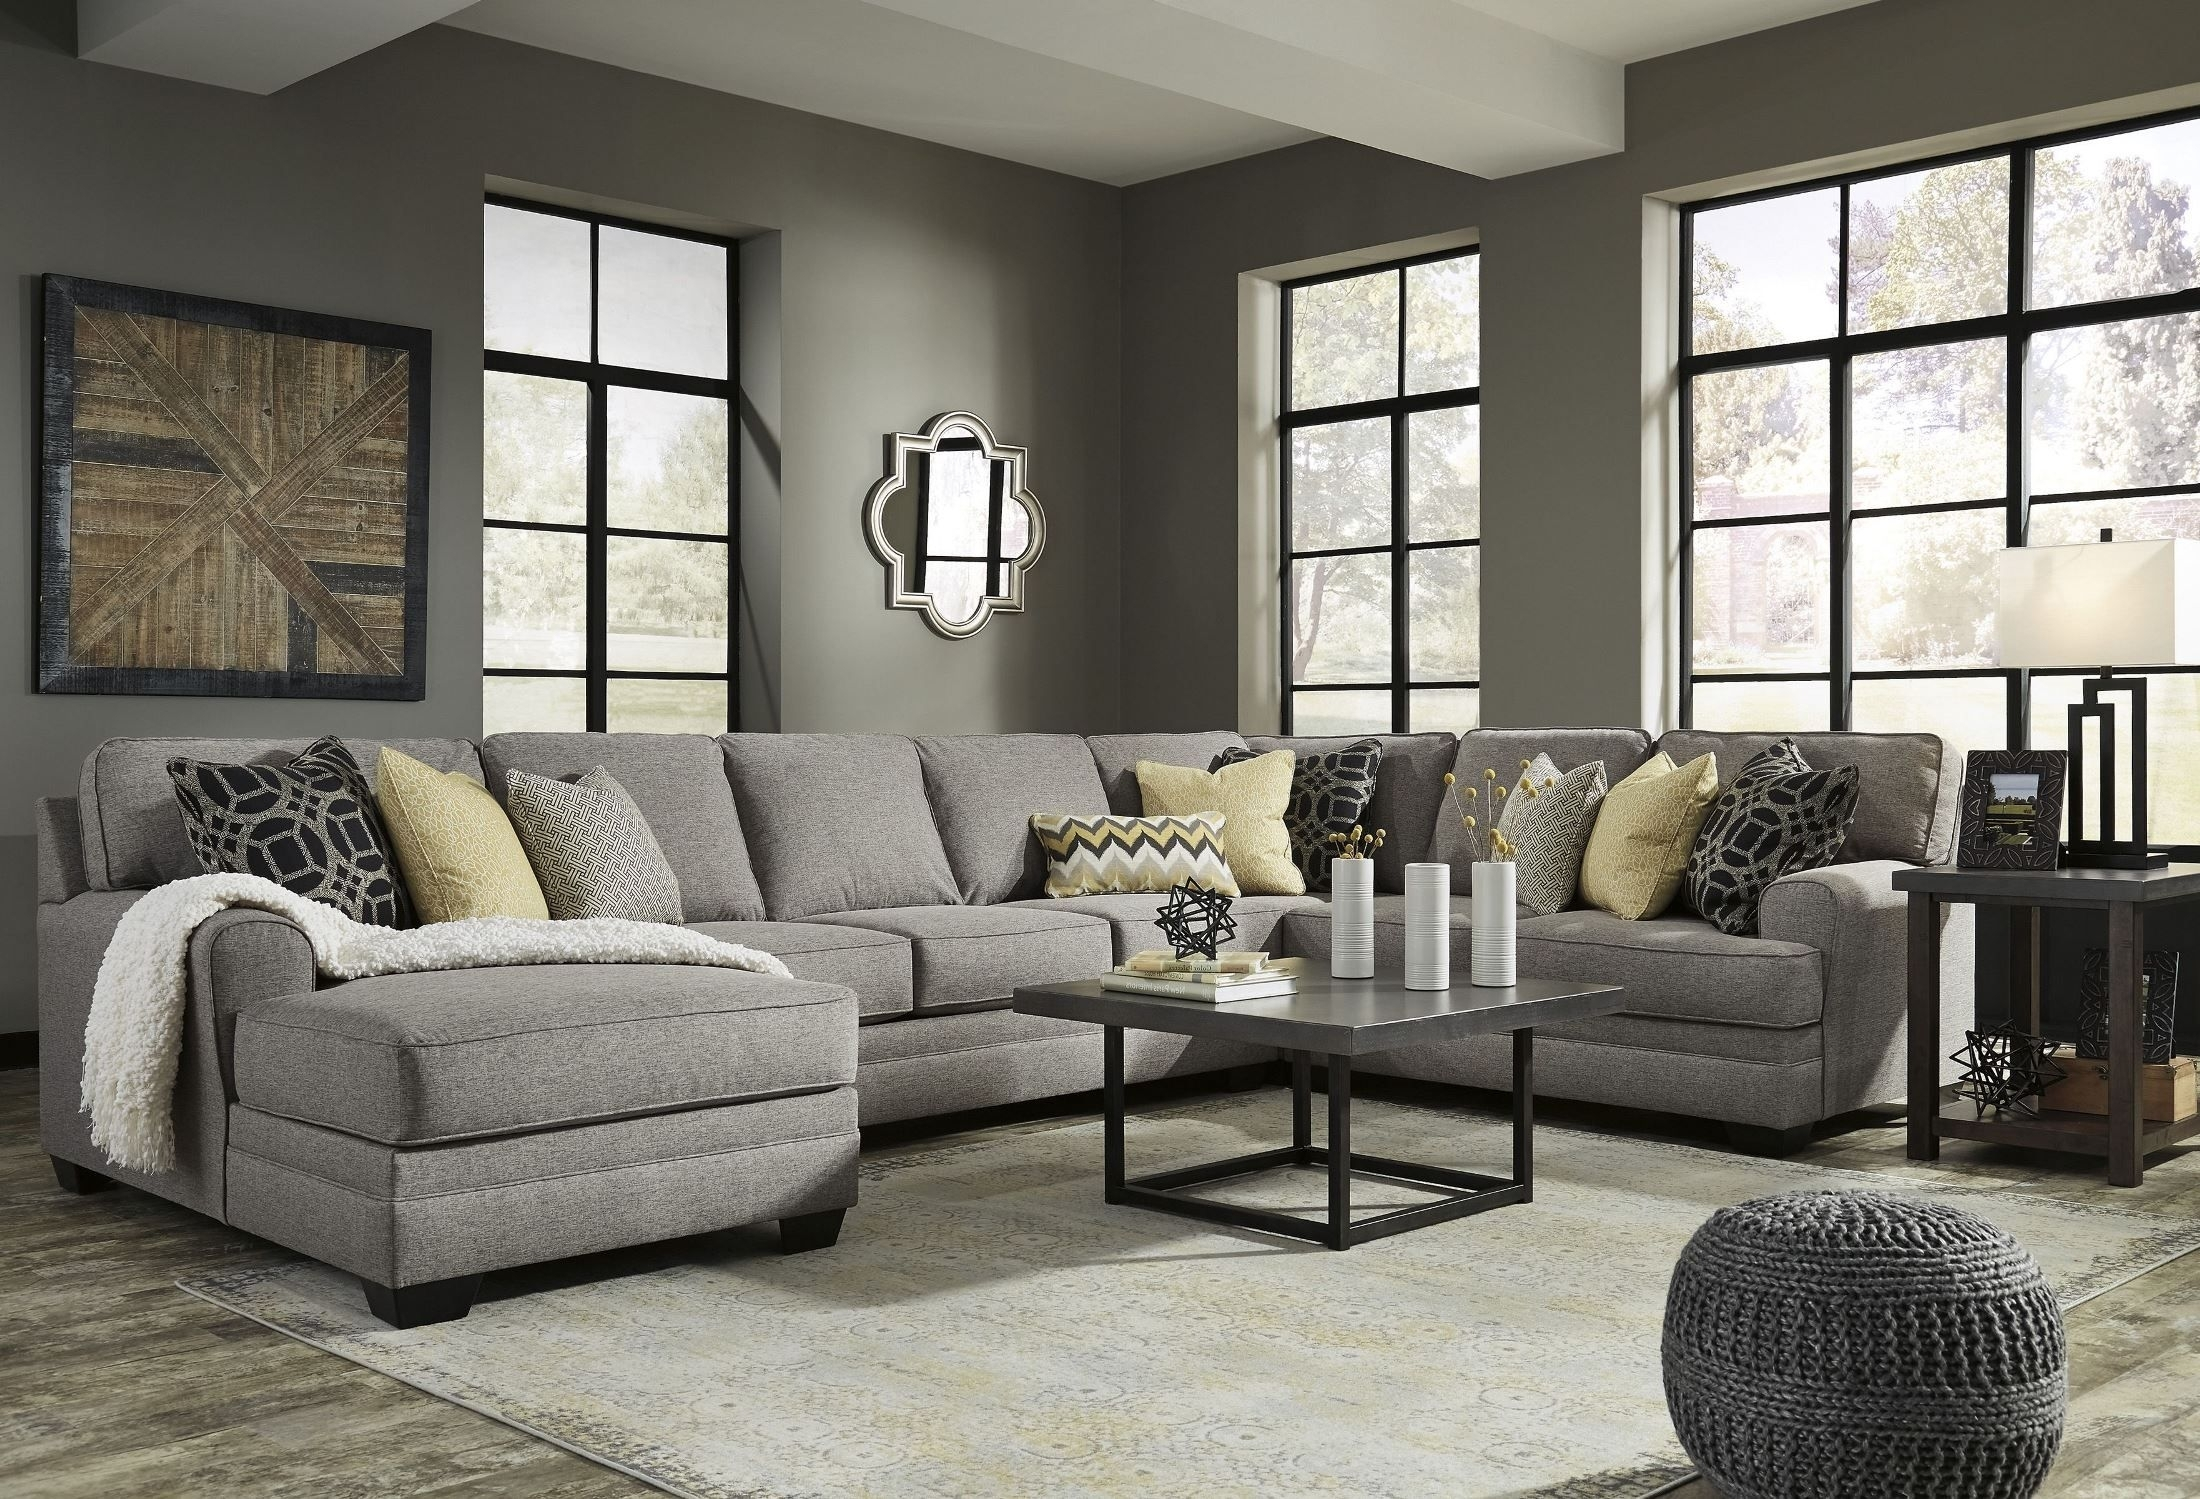 Large Chaise Sofas | Baci Living Room intended for Delano 2 Piece Sectionals With Laf Oversized Chaise (Image 21 of 30)